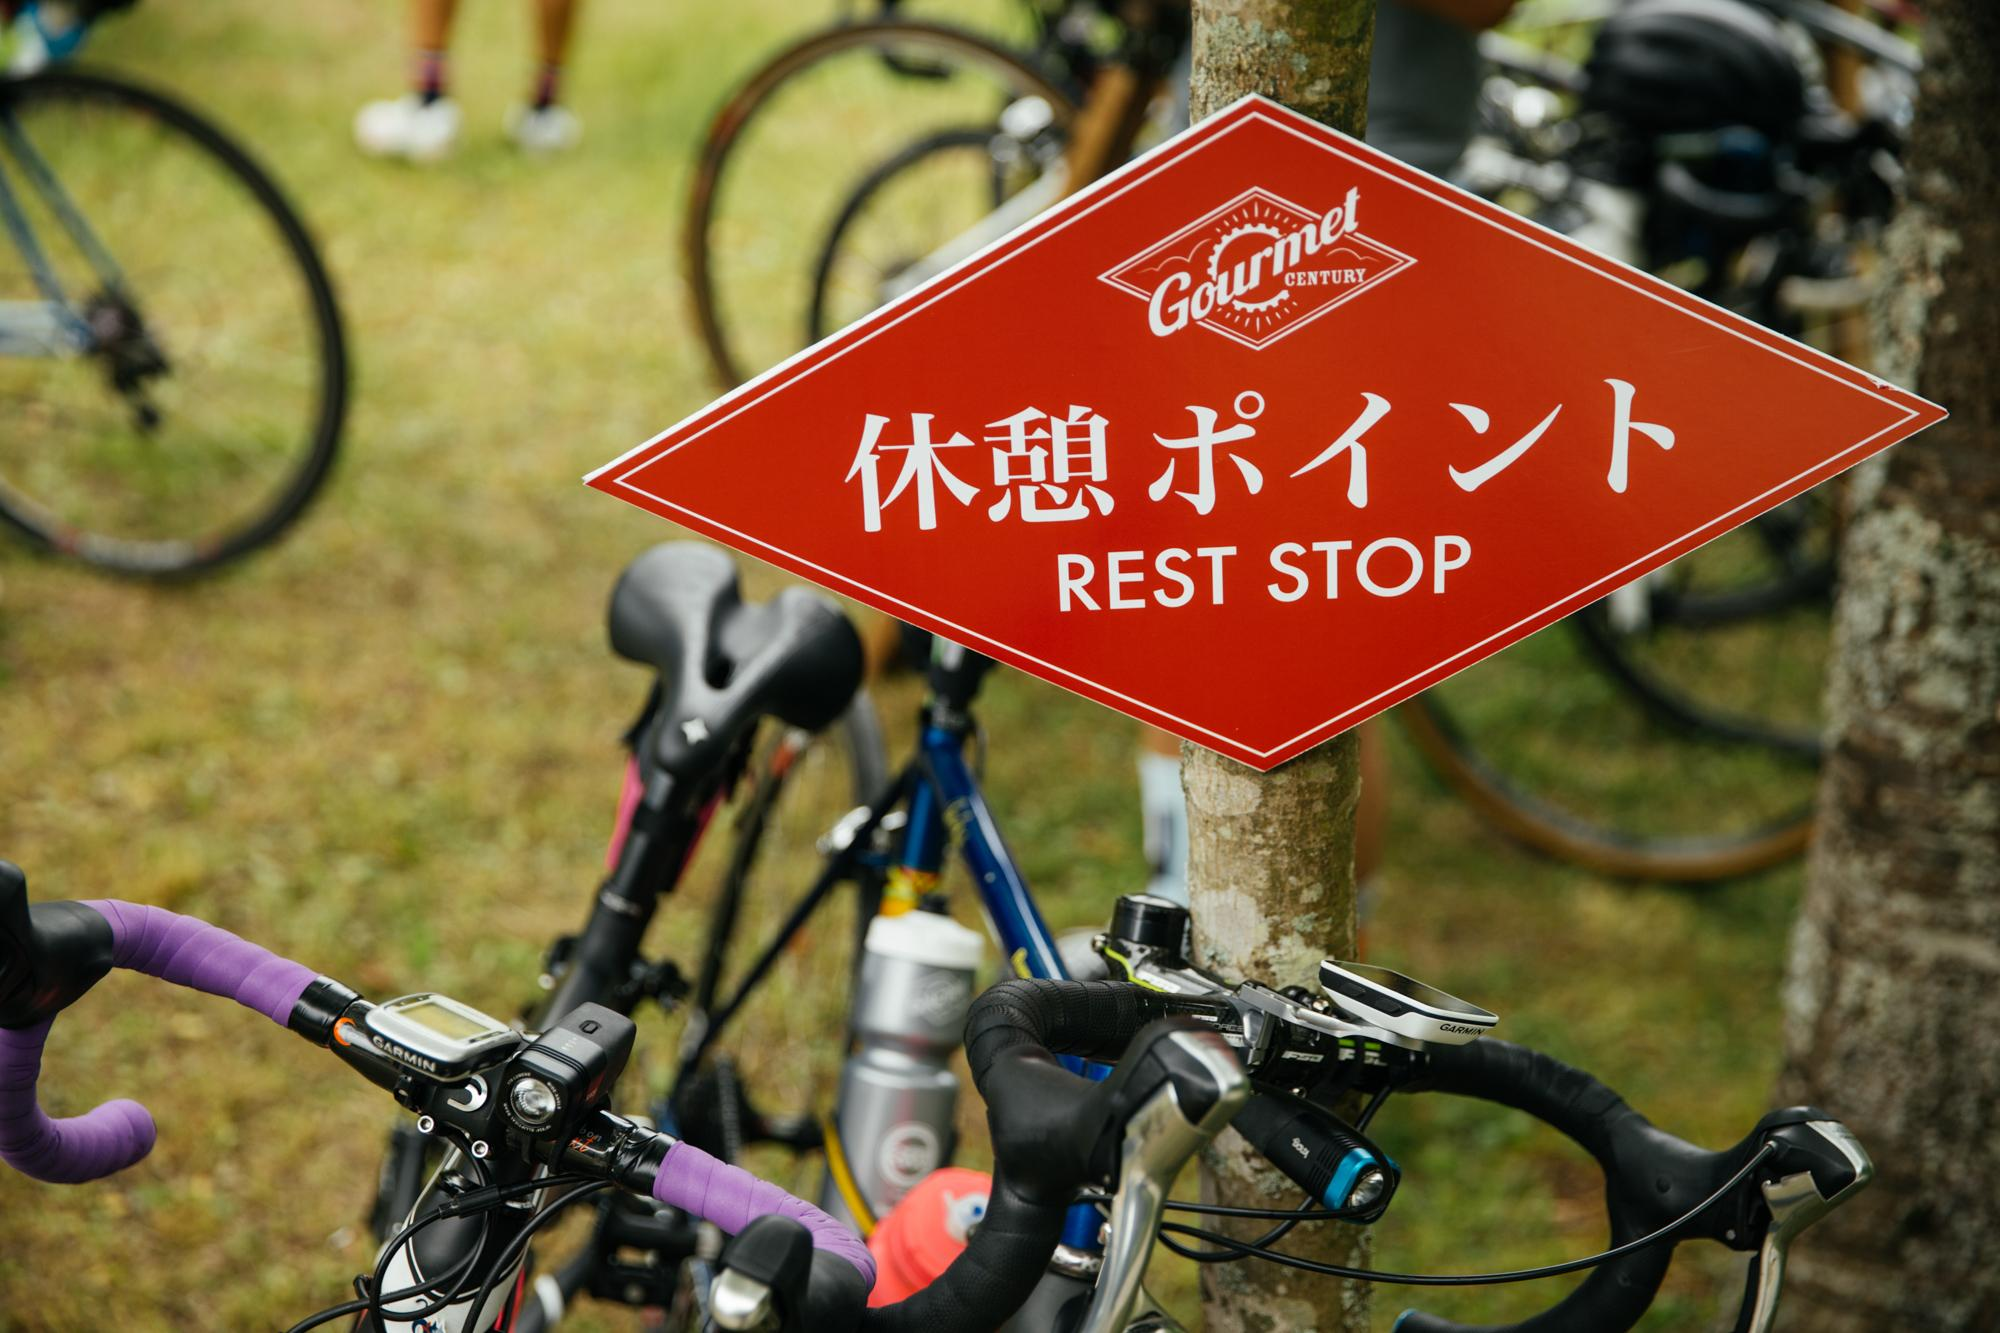 Rest is right!